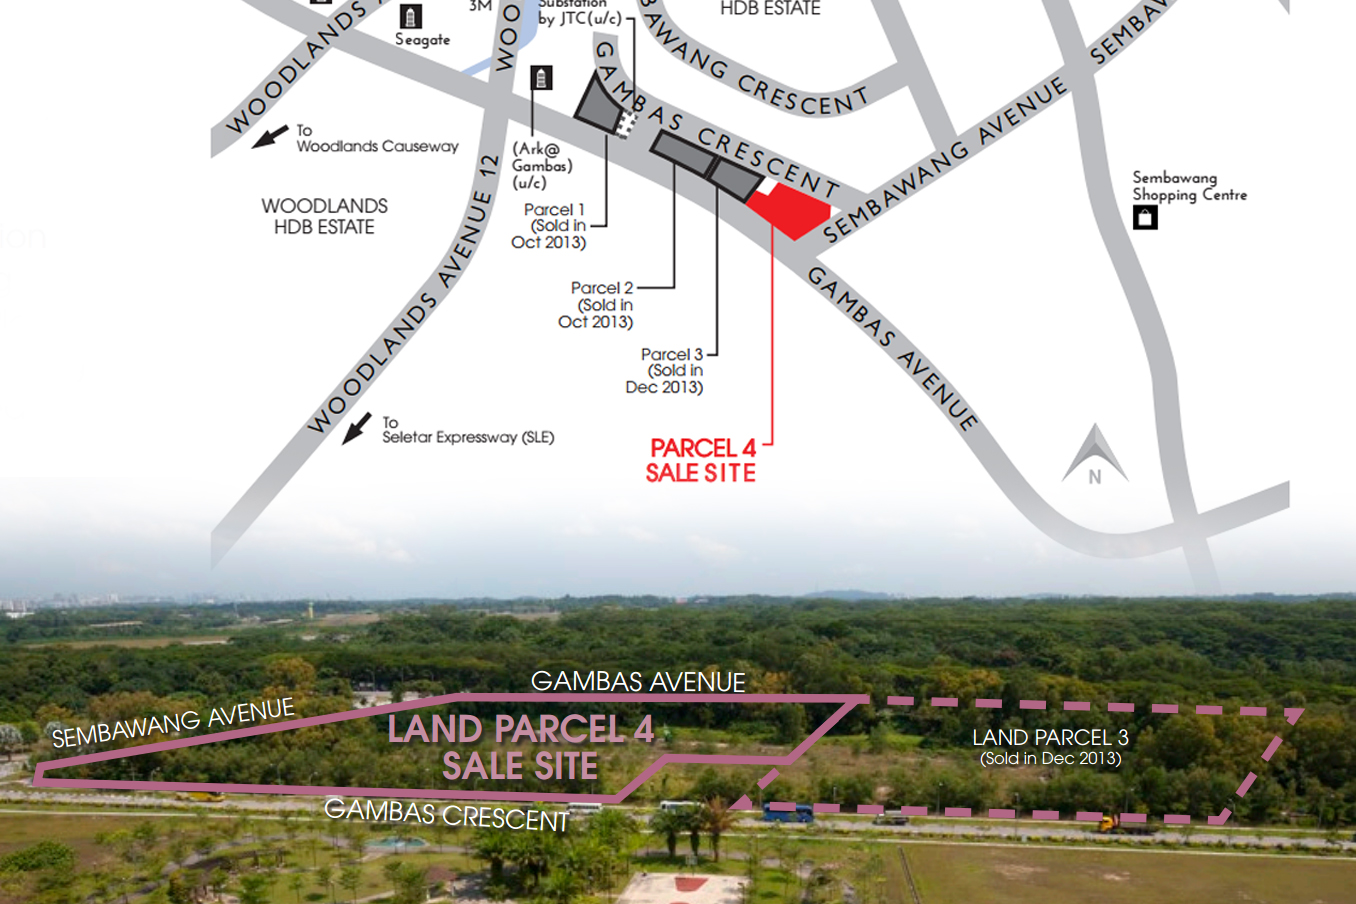 Gambas Crescent industrial site draws 4 bids - Singapore Property - Market News